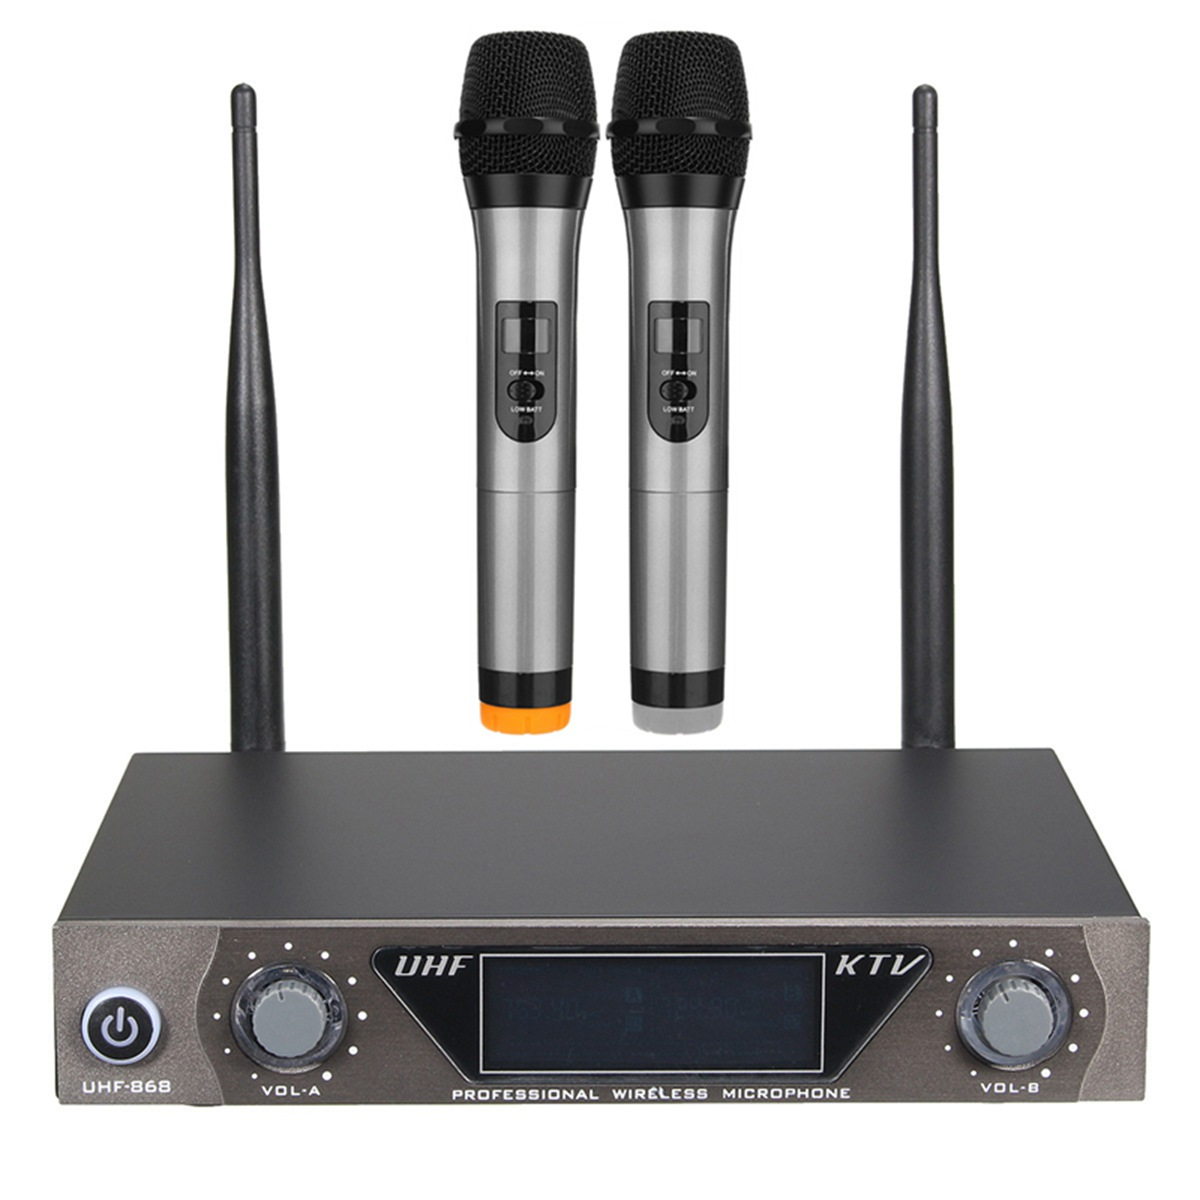 LEORY Wireless UHF 2 Channel Microphone System Cordless Twin Handheld Mic Transmitter Microphone Systerm for Karaoke KTV leory uhf wireless microphone system 4 channel uhf receiver karaoke microphone system with four mic for diy family ktv singing